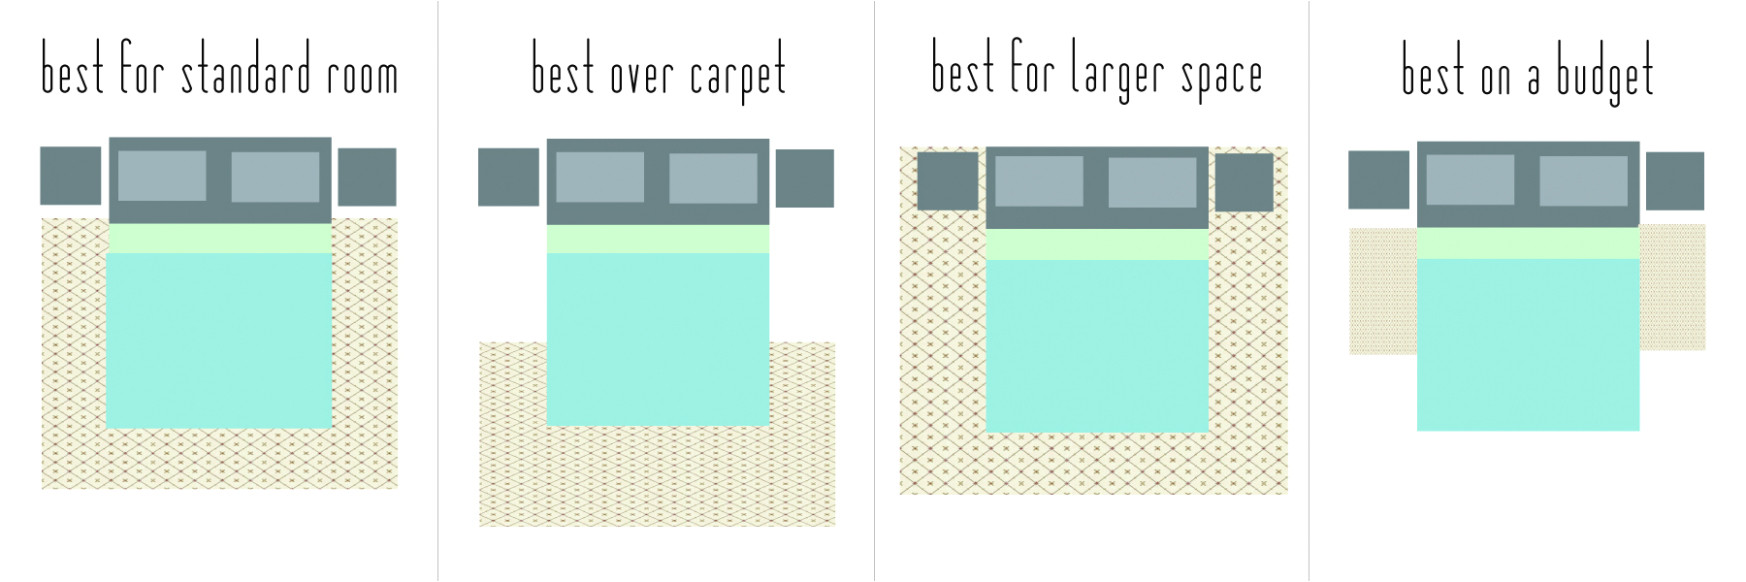 queen bed designs rug rugs how to put an area rug under a bed designs throughout